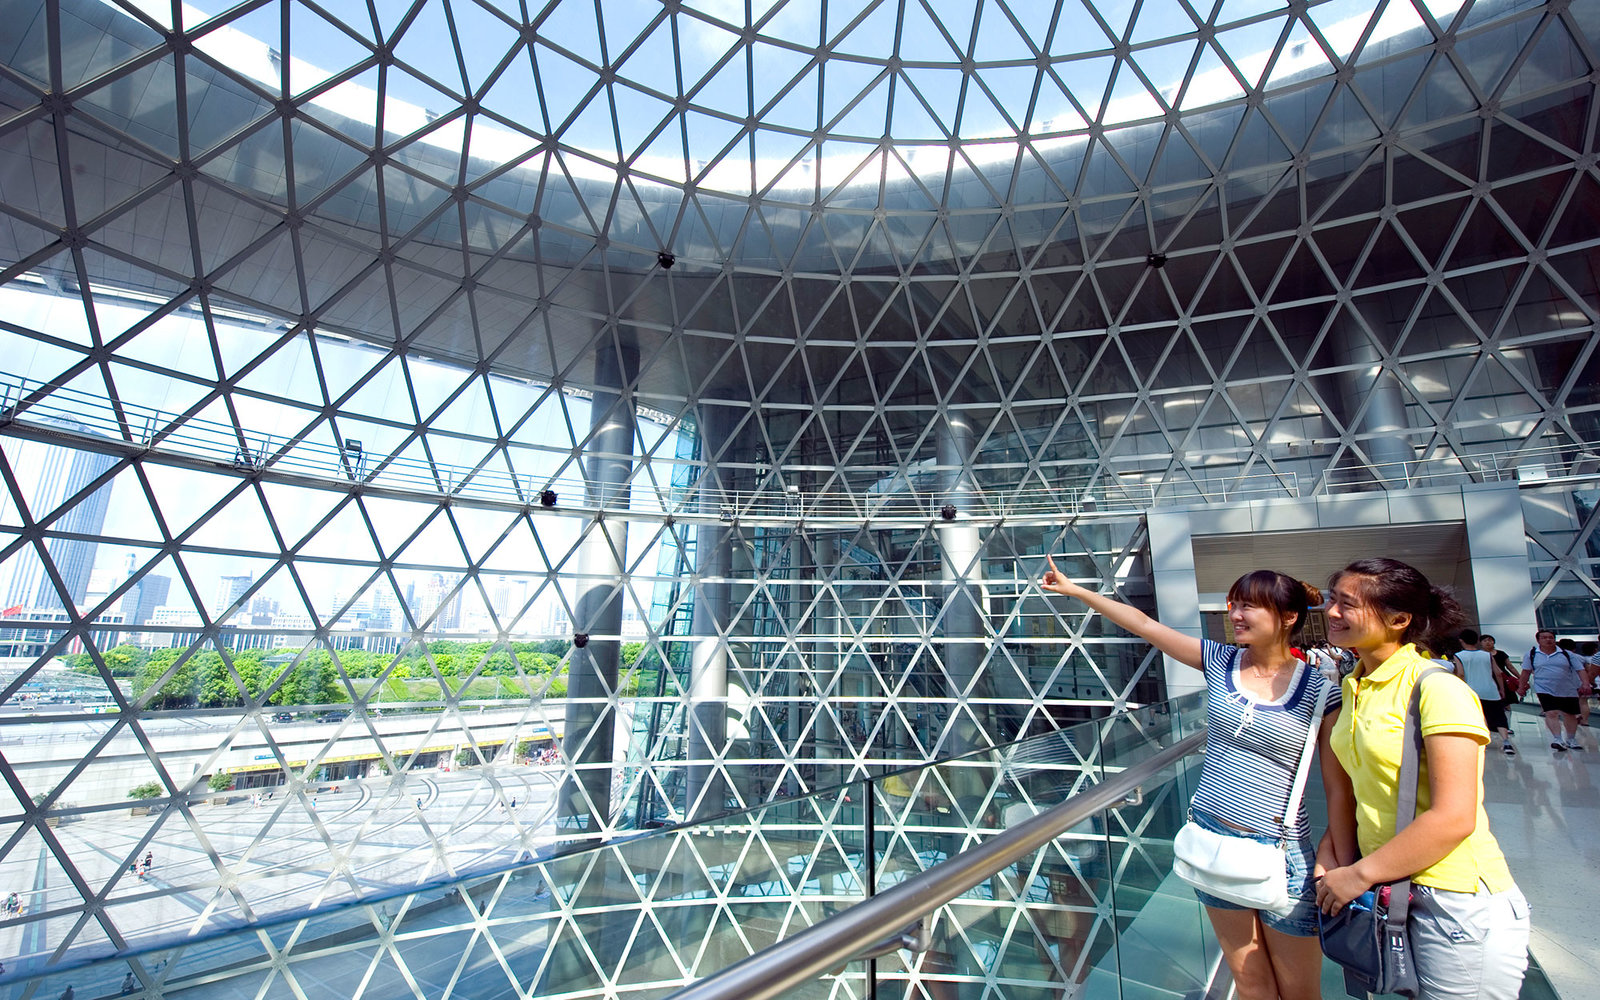 Shanghai's Science and Technology Museum